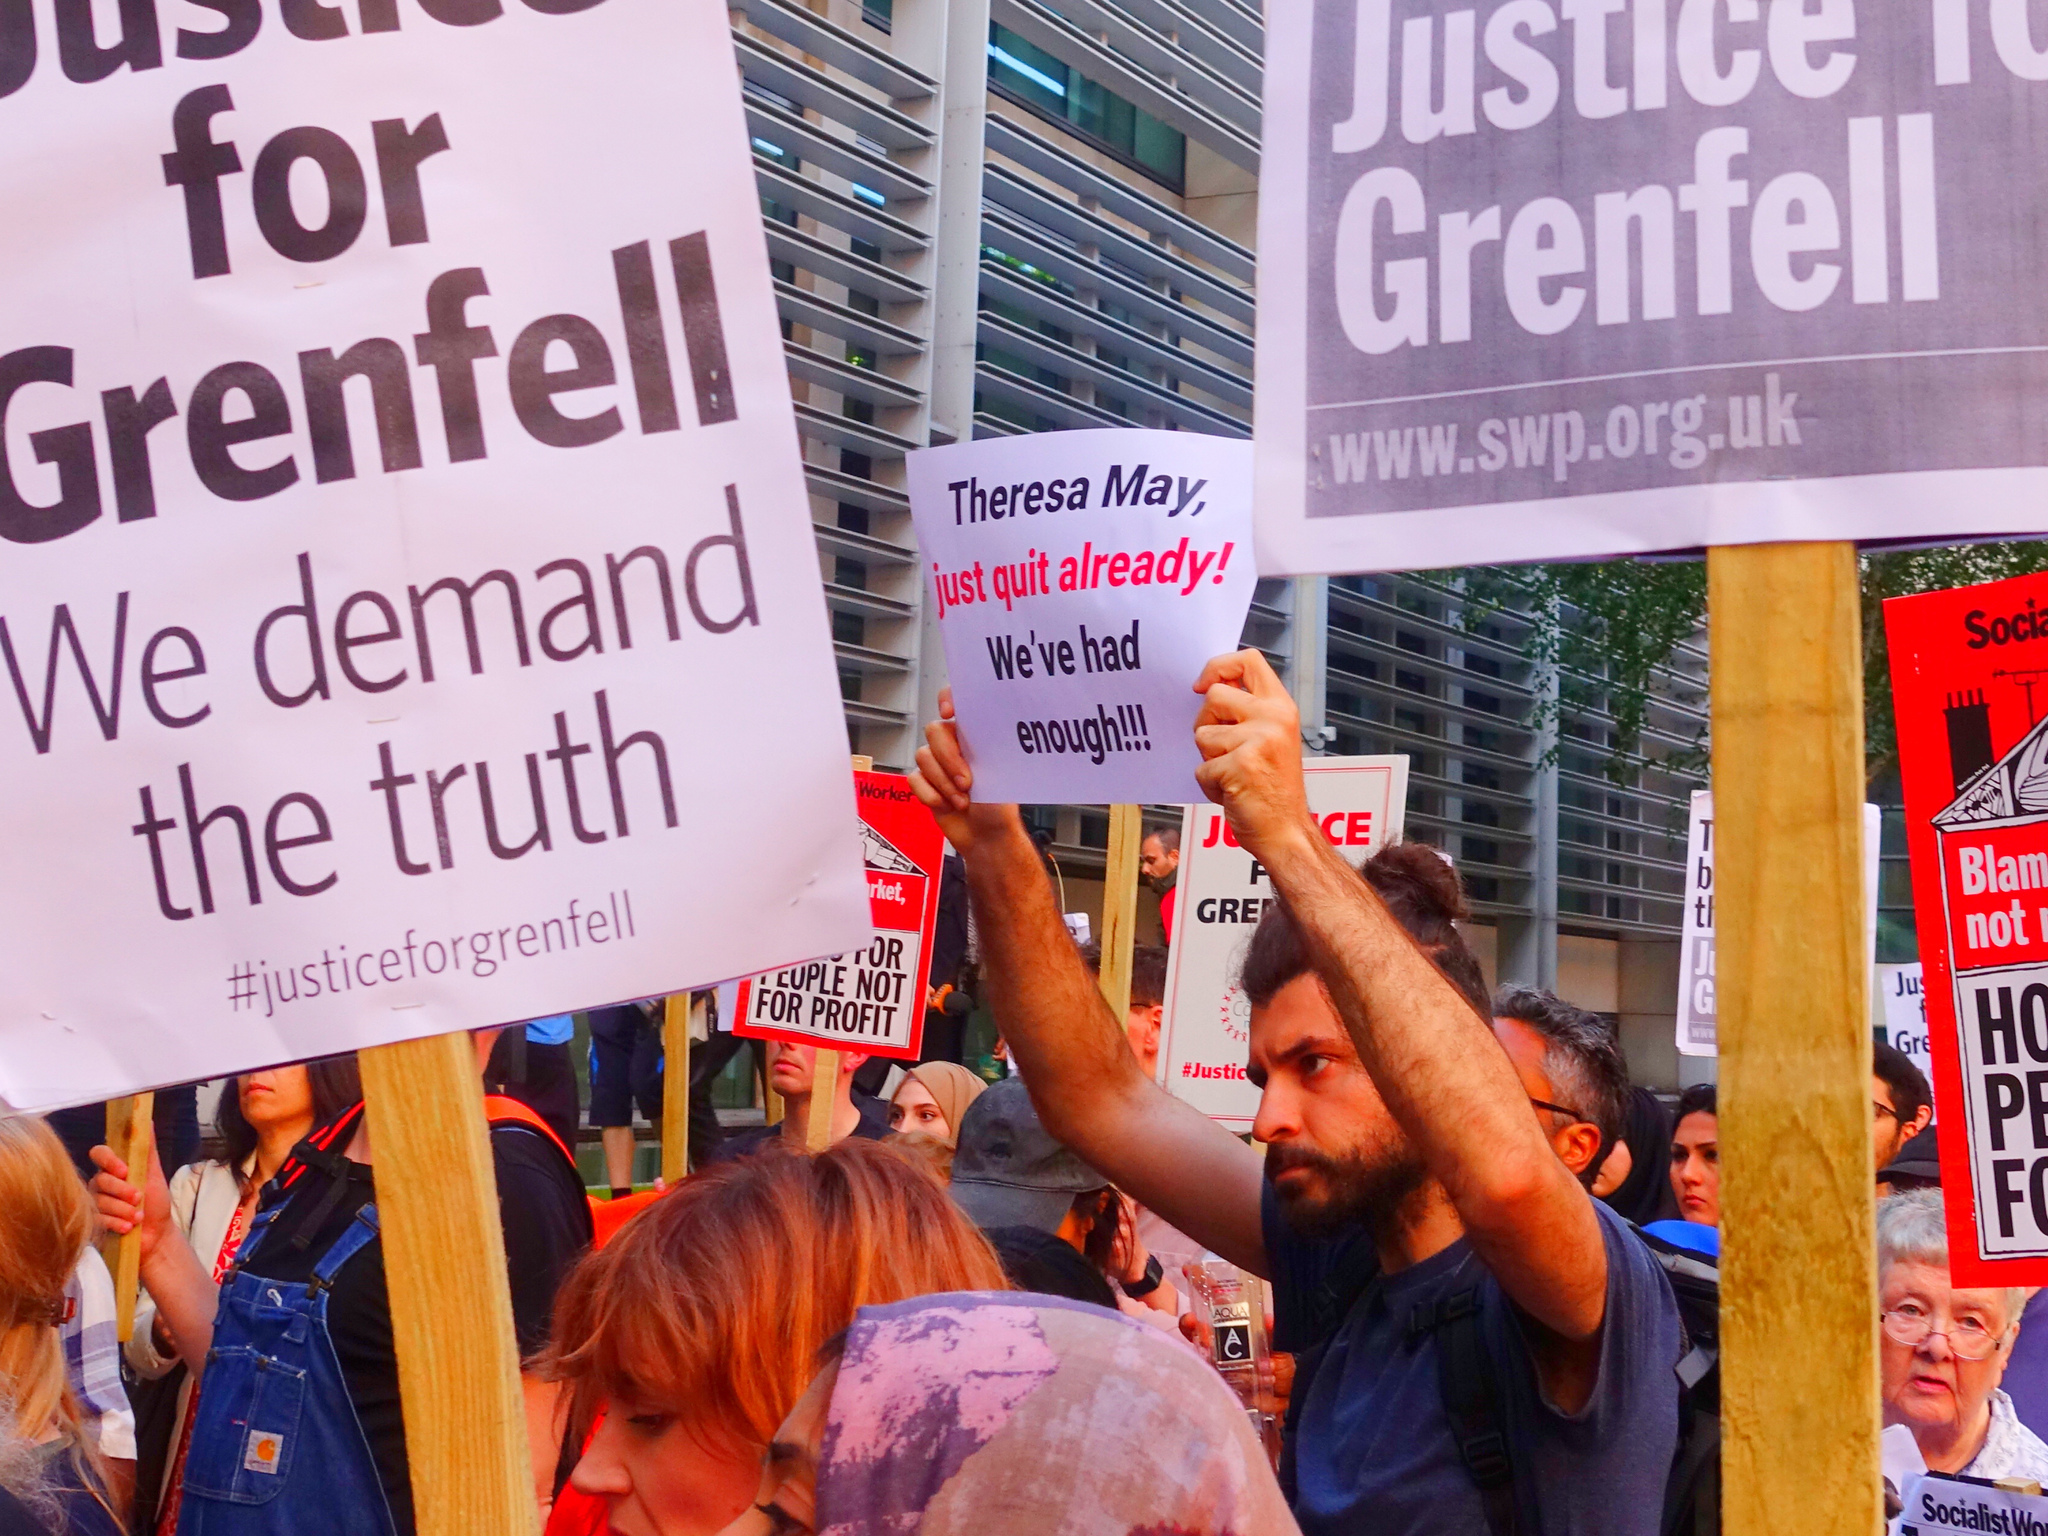 Director of Grenfell company steps down